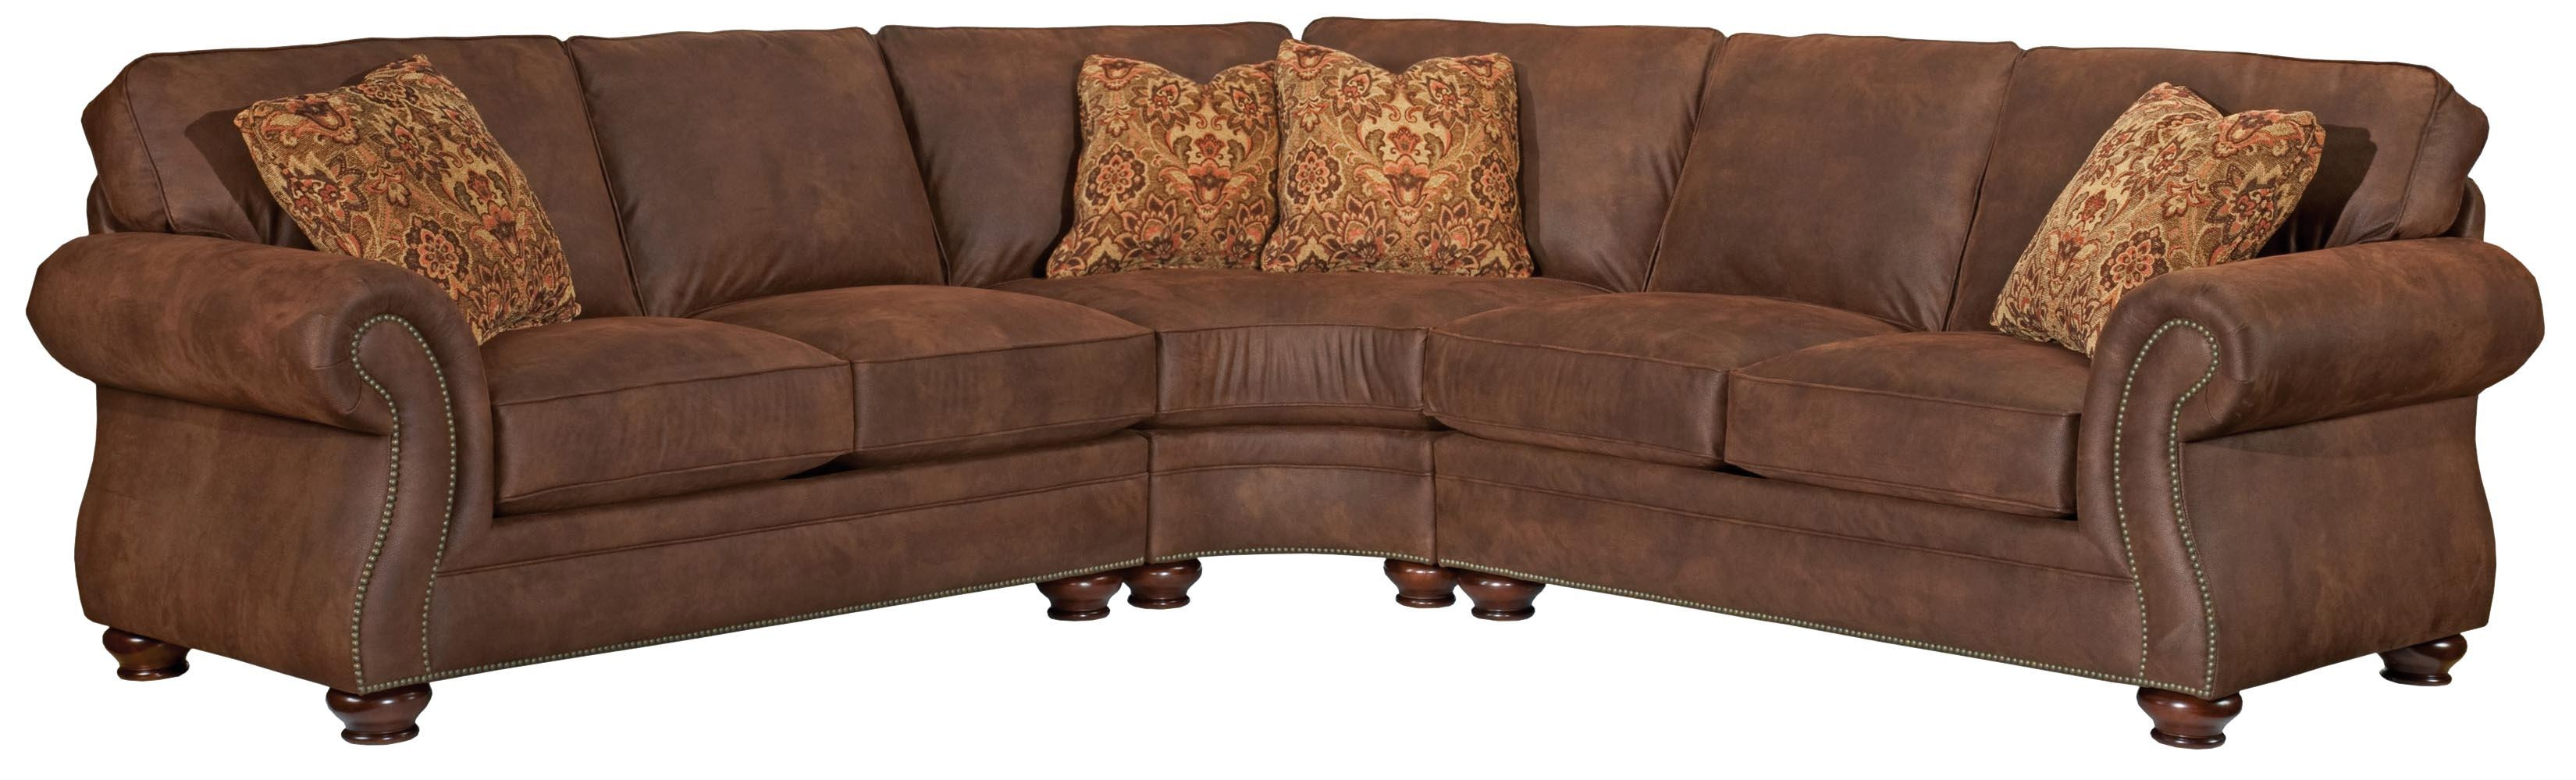 Broyhill Furniture Laramie 3 Piece Wedge Sectional Sofa – Wayside In Broyhill Reclining Sofas (Image 2 of 20)